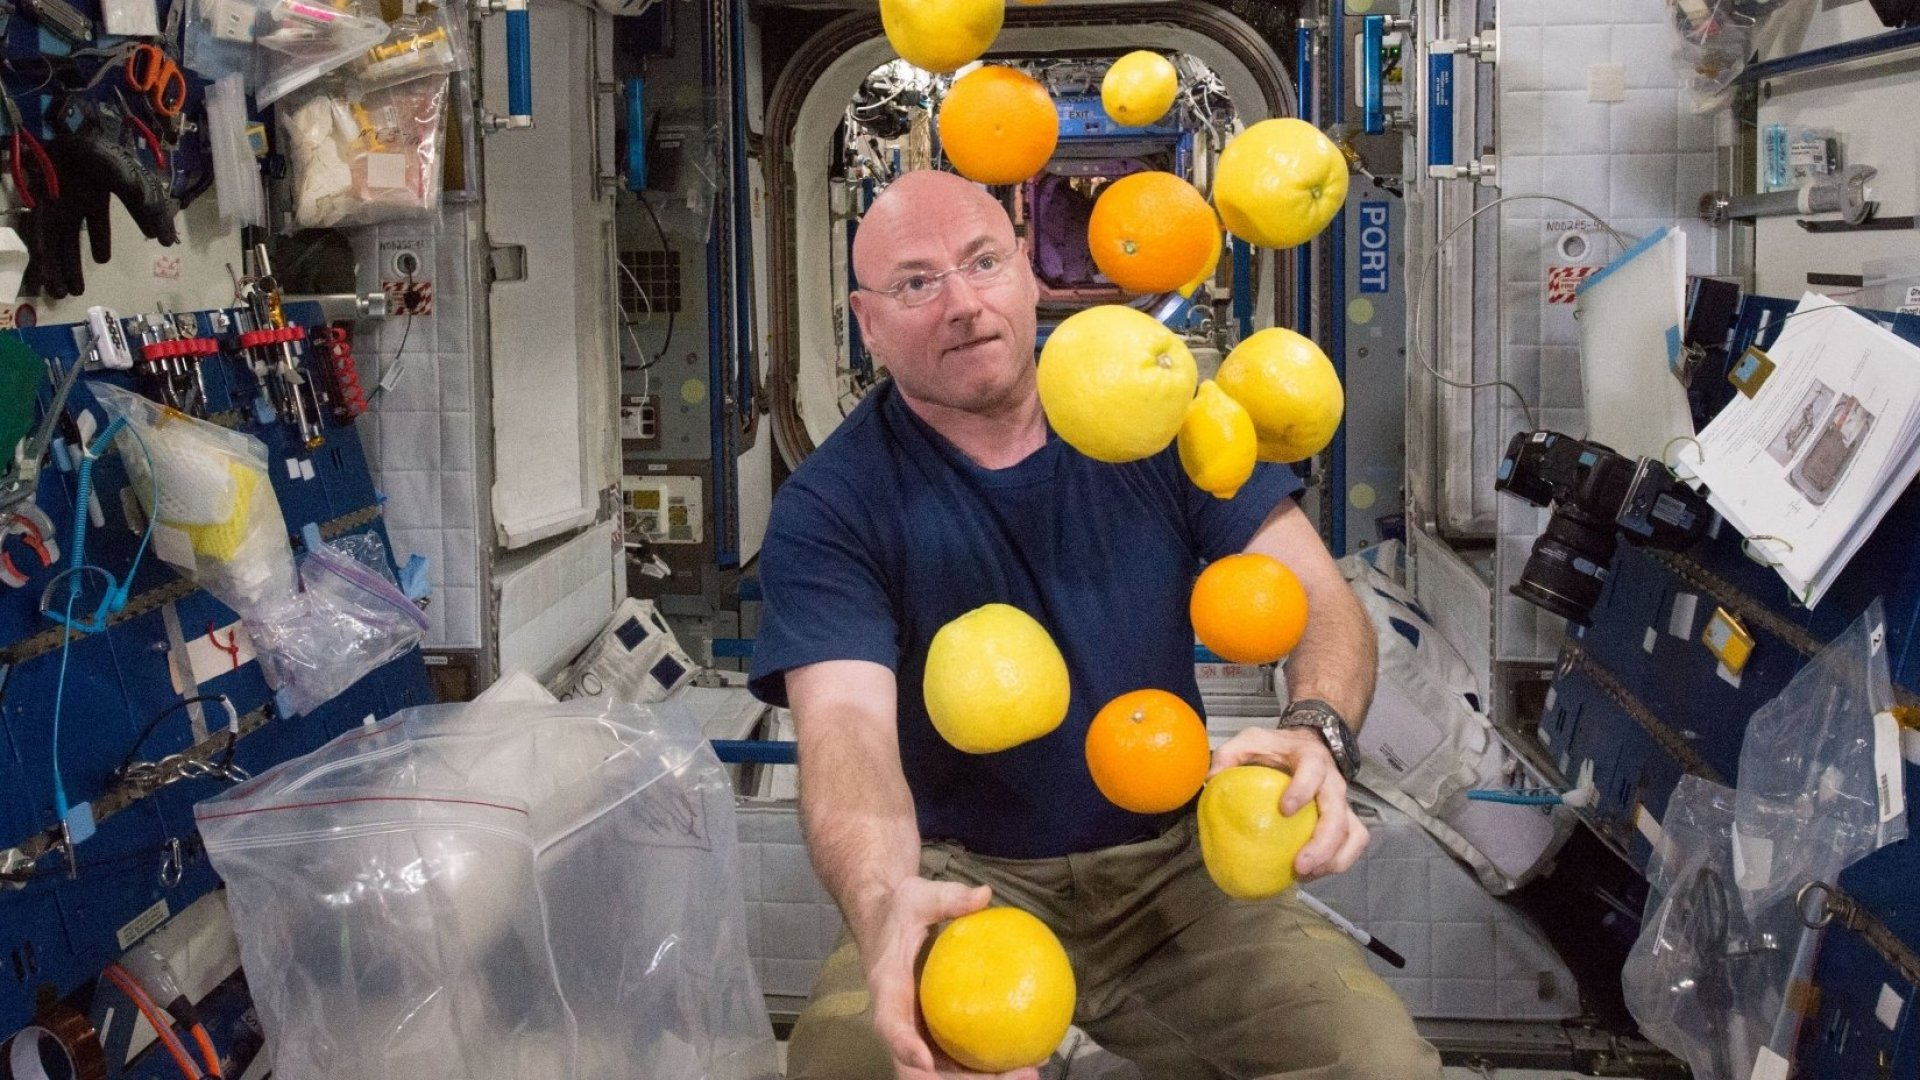 NASA Astronaut Scott Kelly Spent 340 Days in Space. Here Are His Best Tips for Handling Isolation